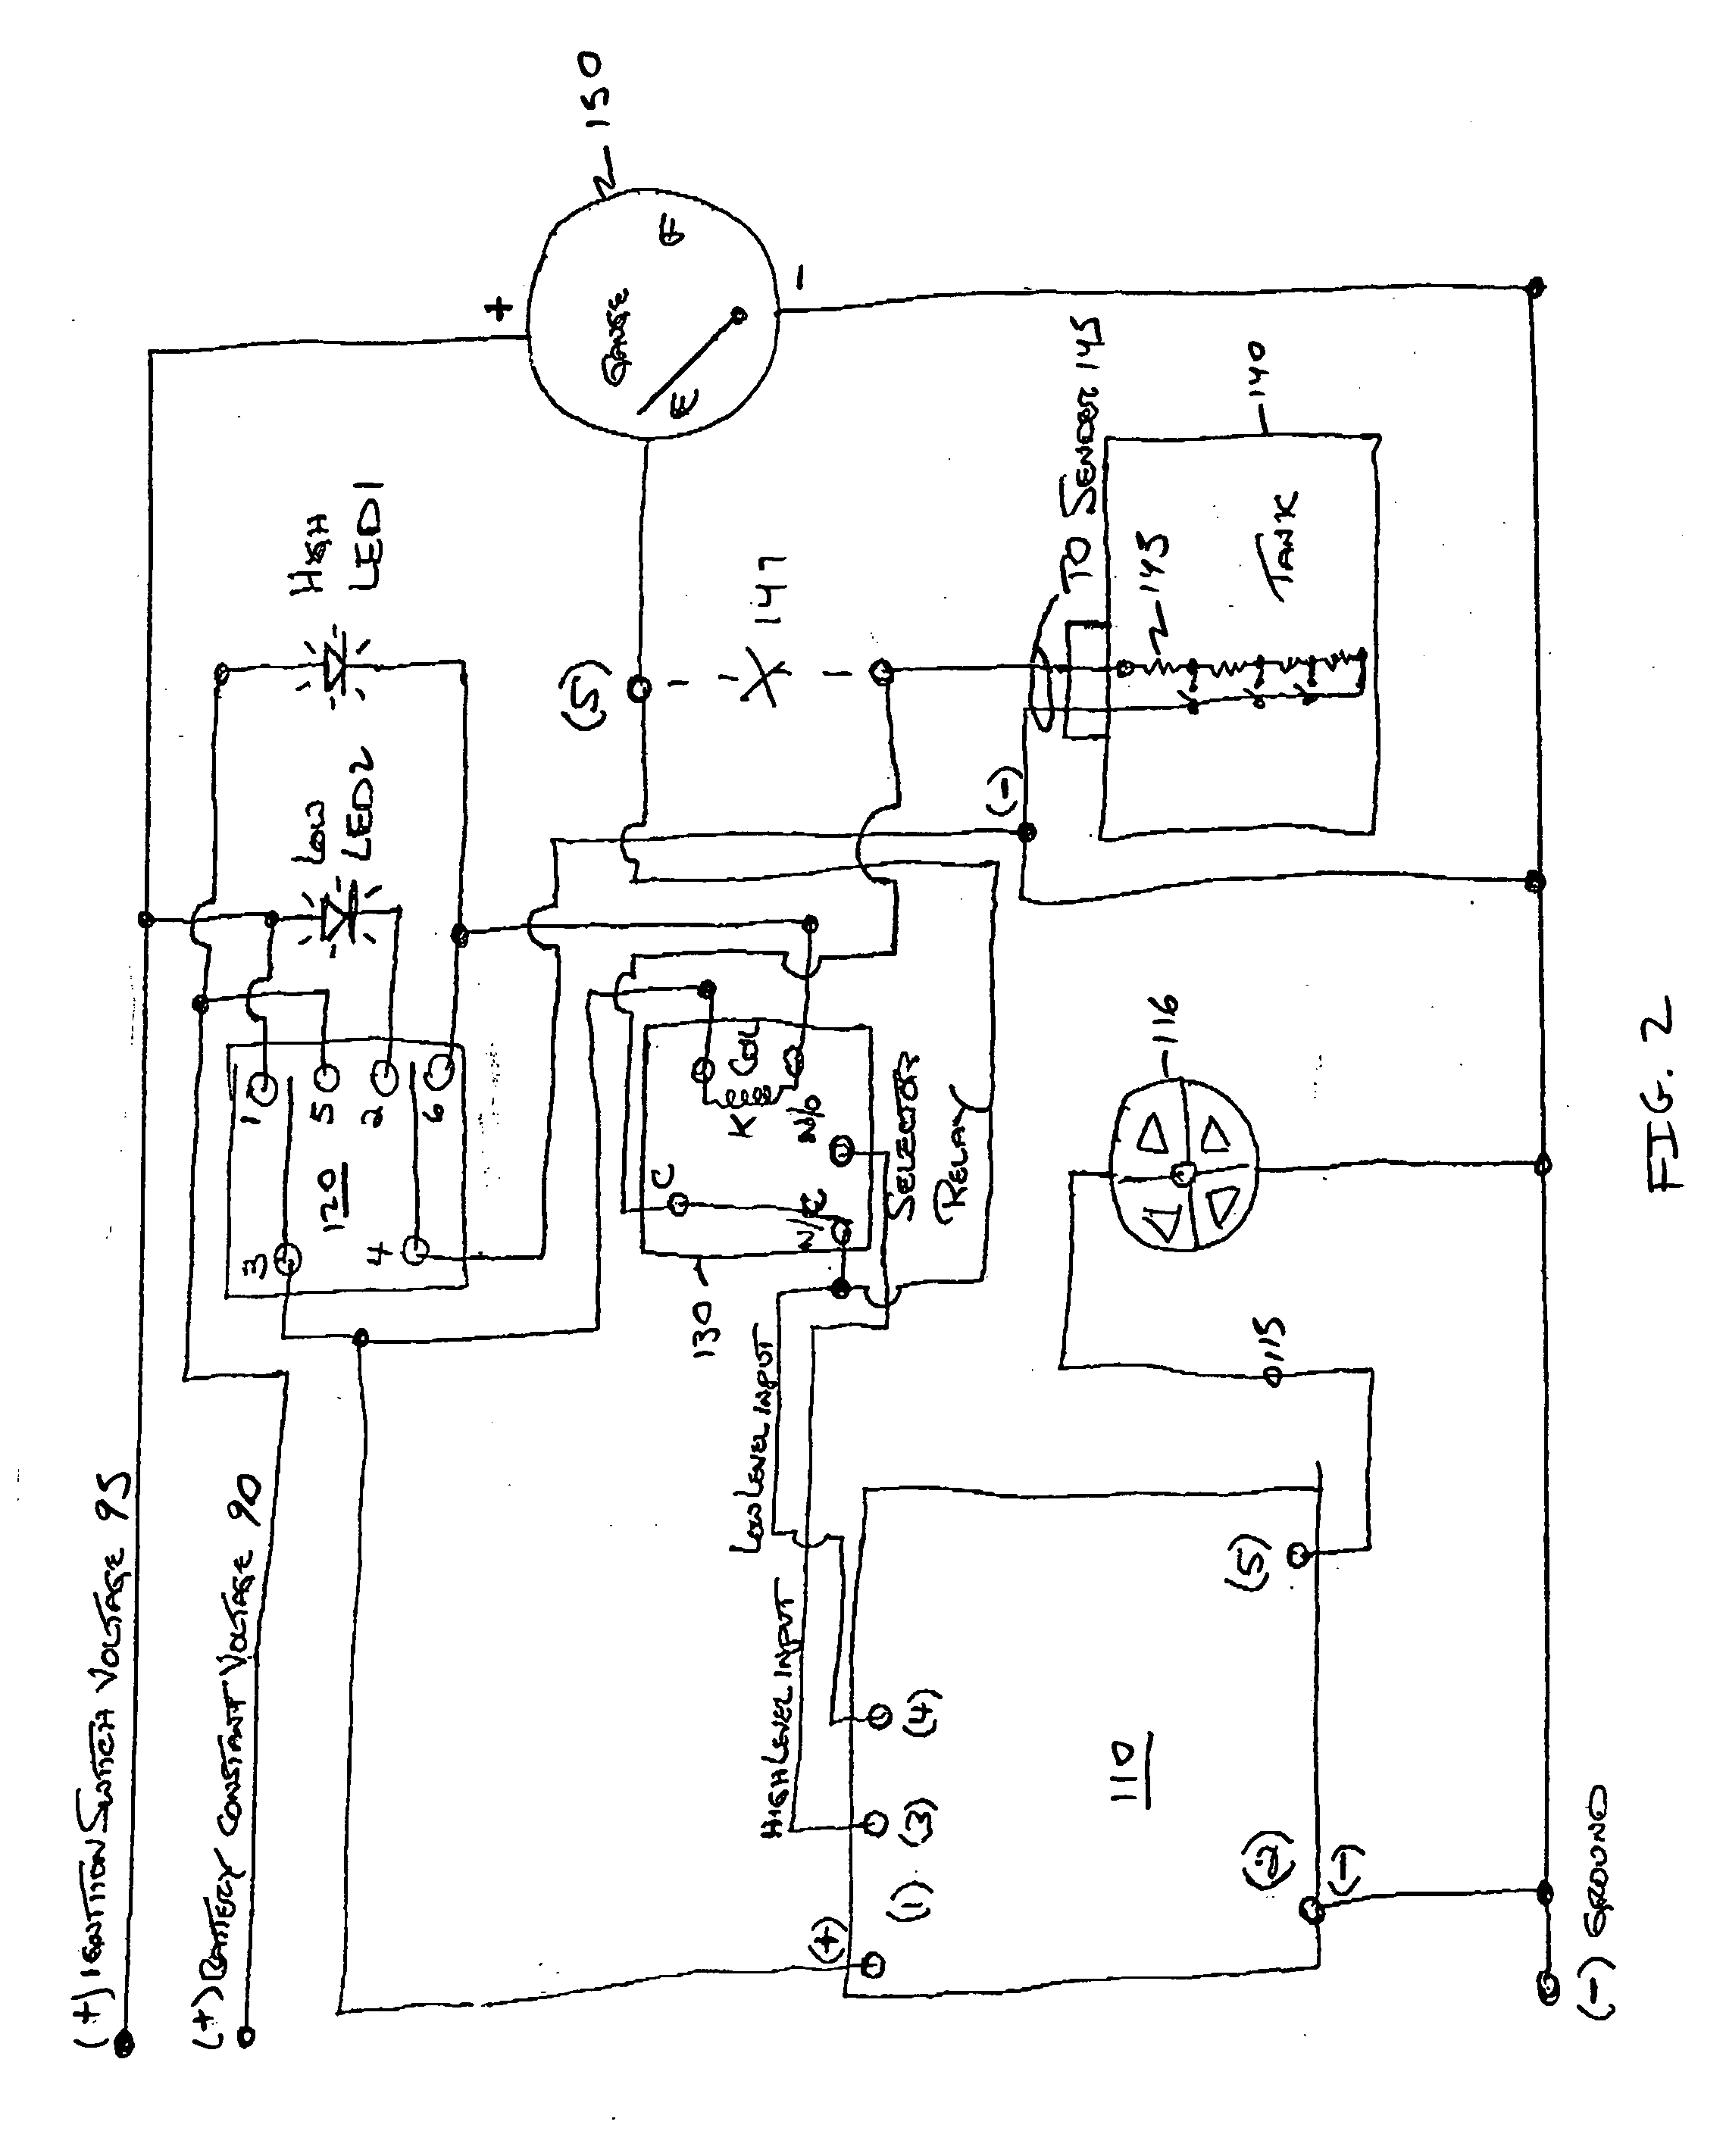 [DIAGRAM] 2009 Fleetwood Wiring Diagram FULL Version HD